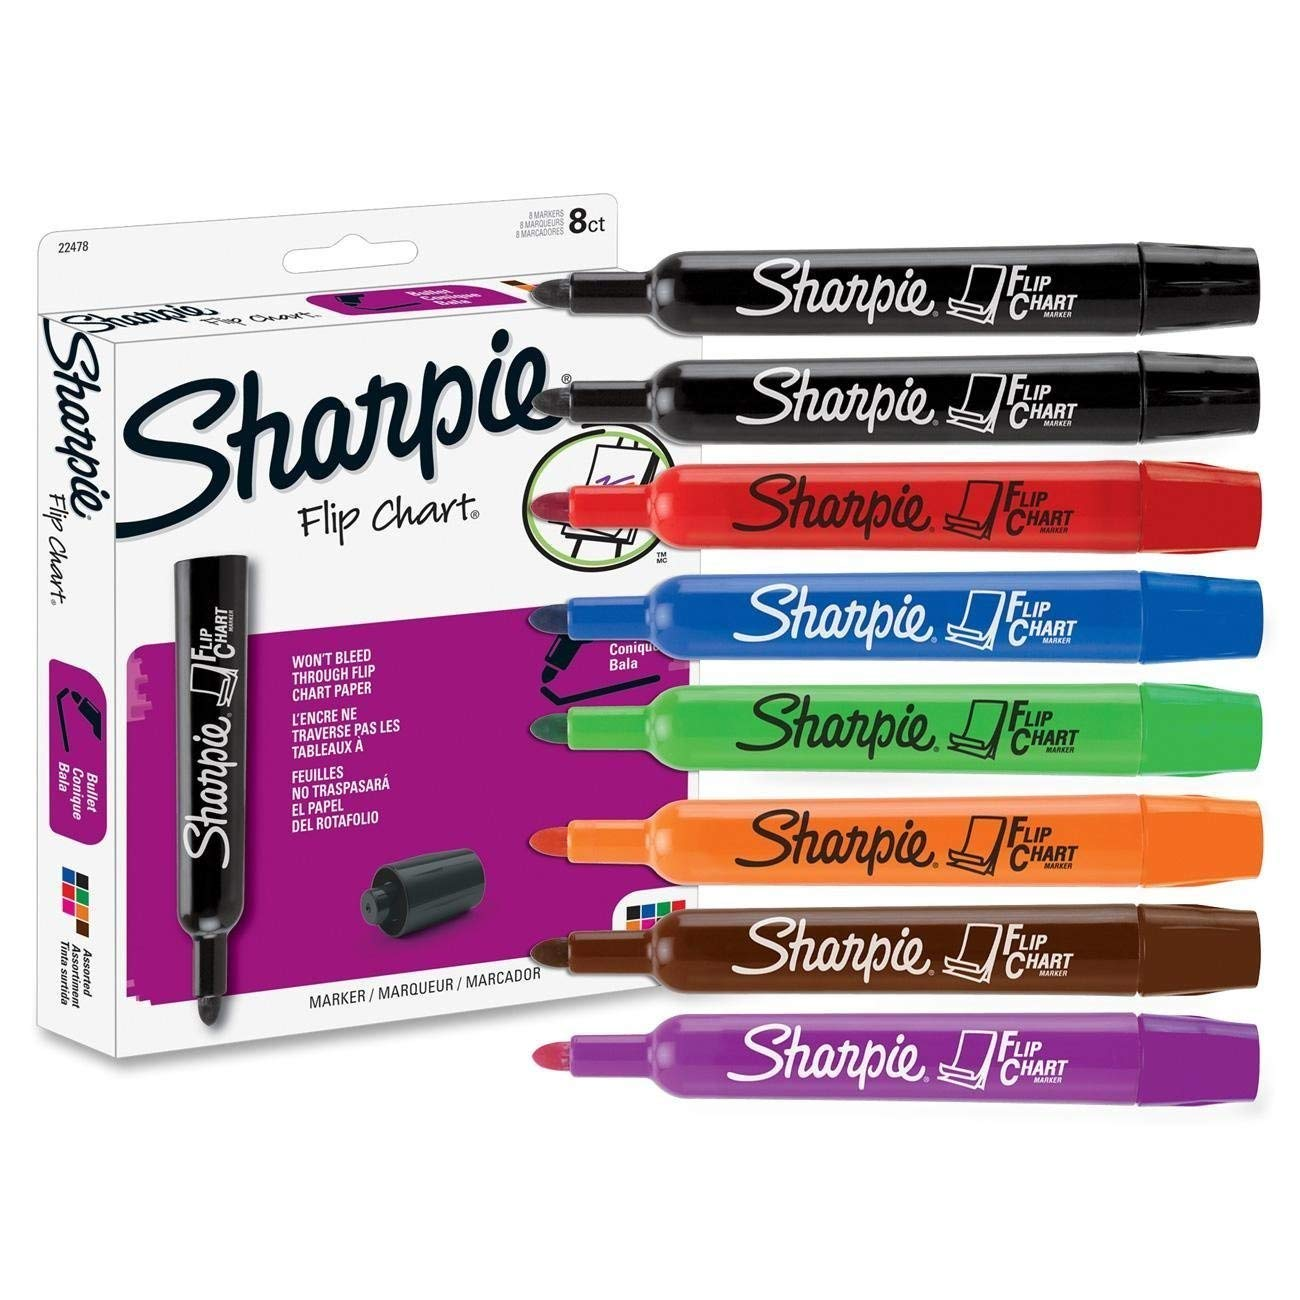 Sharpie Flip Chart Markers, Bullet Tip, Assorted Colors, 2 Packs of 8 by SHARPIE